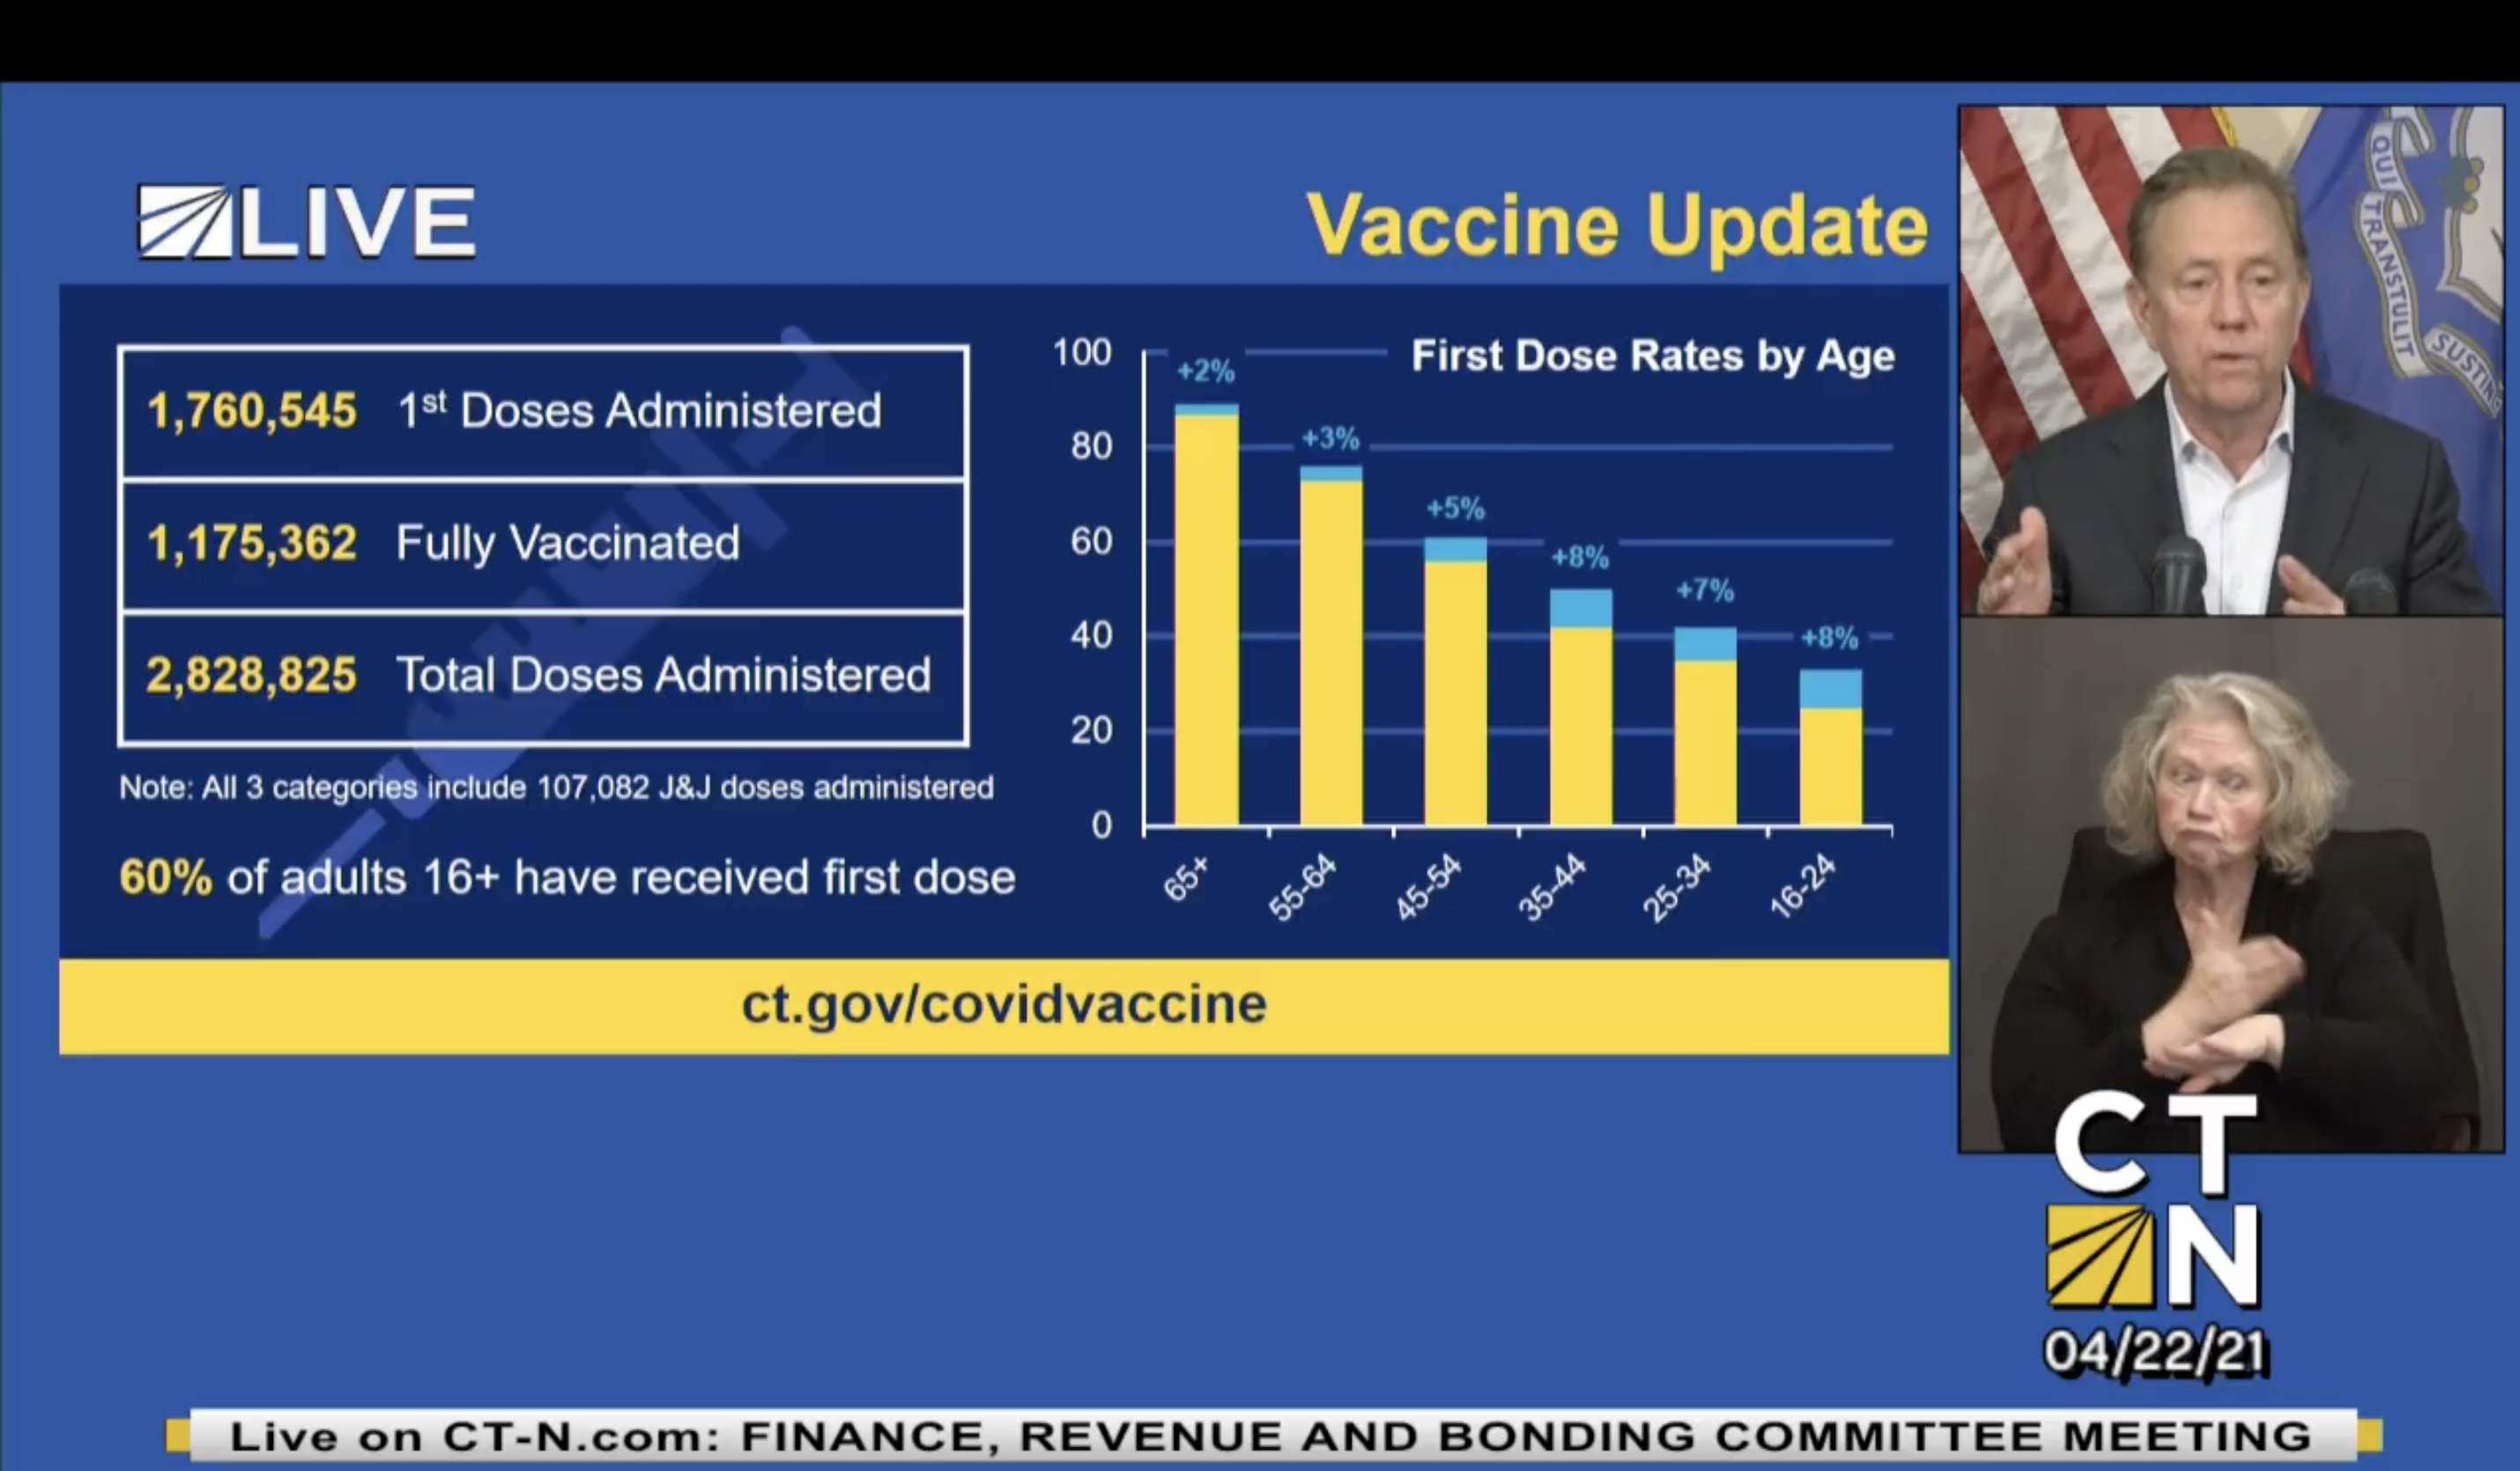 As COVID-19 vaccine supply begins to outpace demand, Gov. Lamont asks business and labor for help